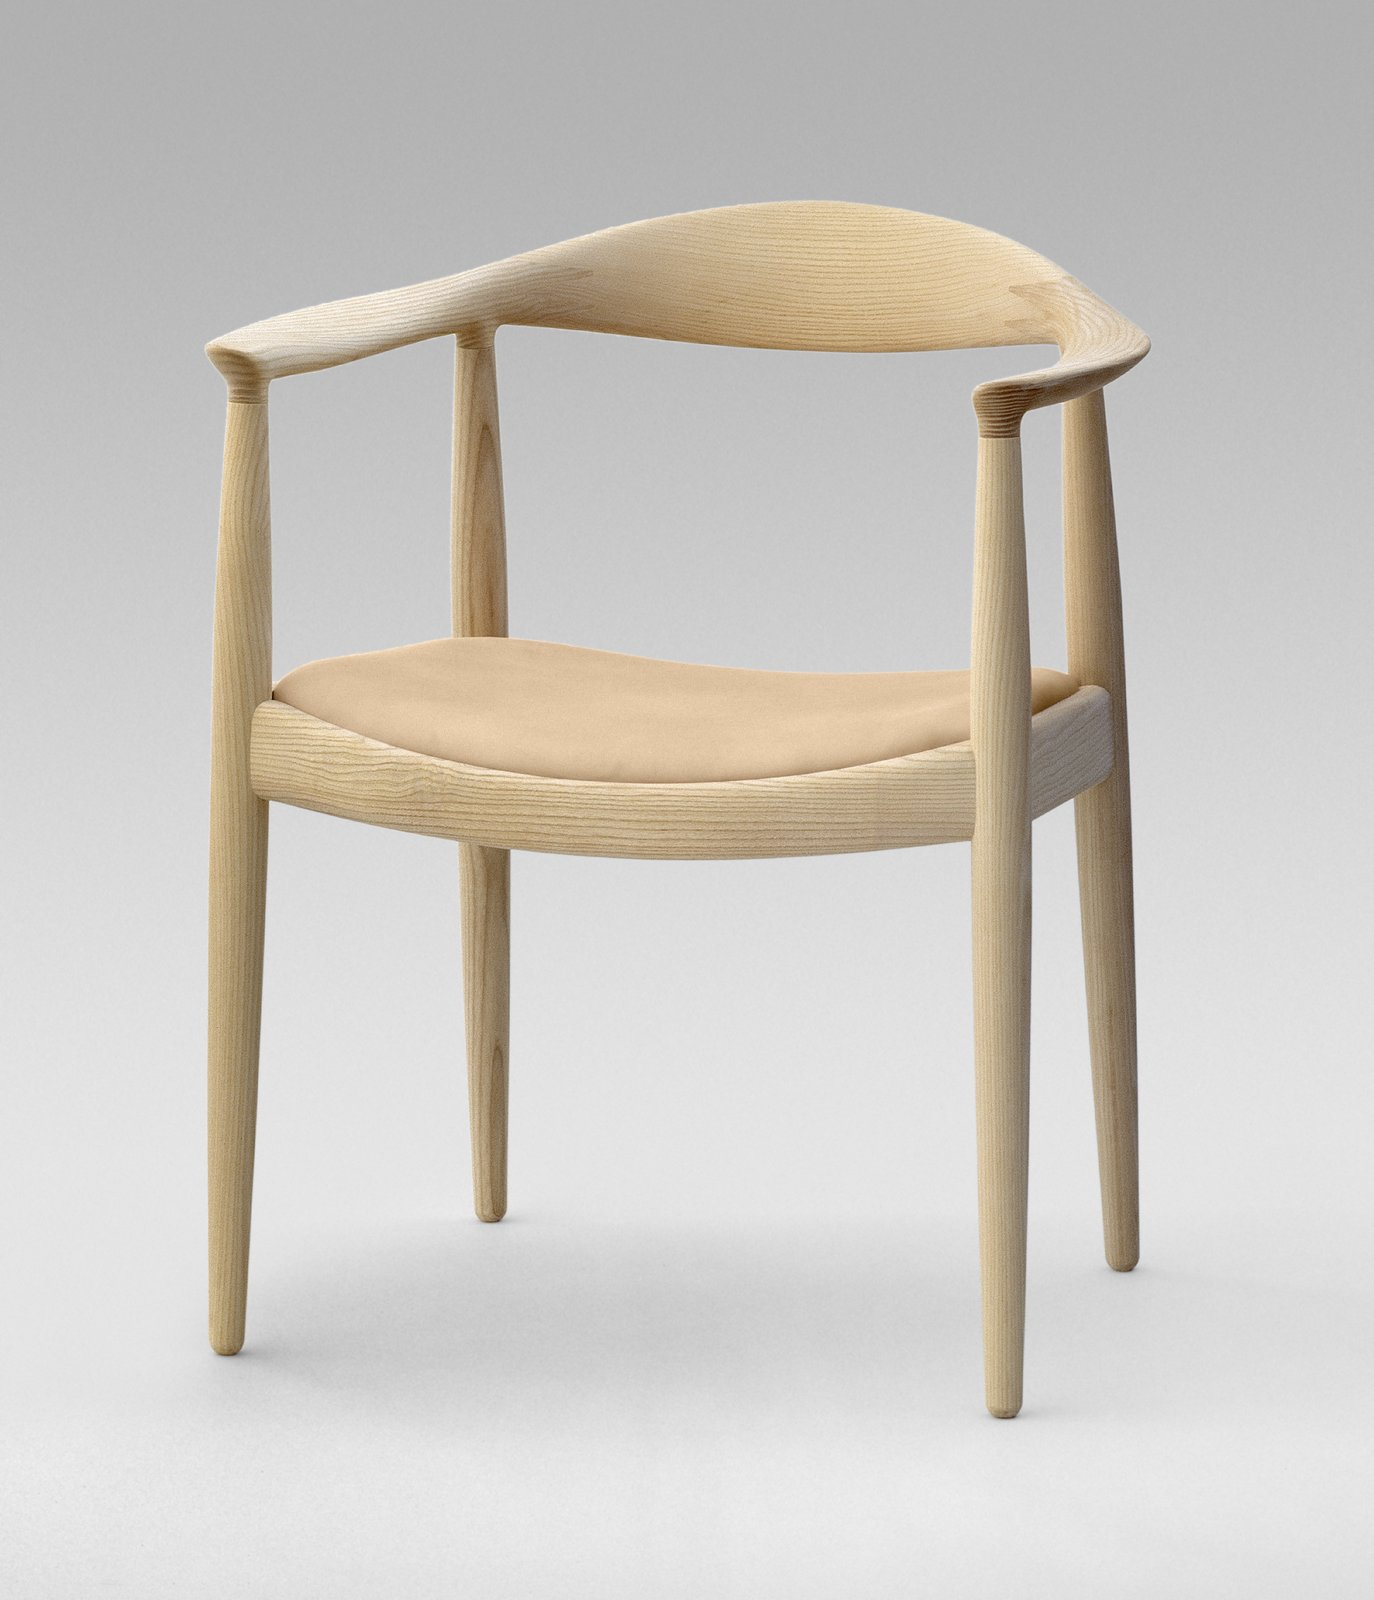 8 Iconic Chairs By Hans Wegner